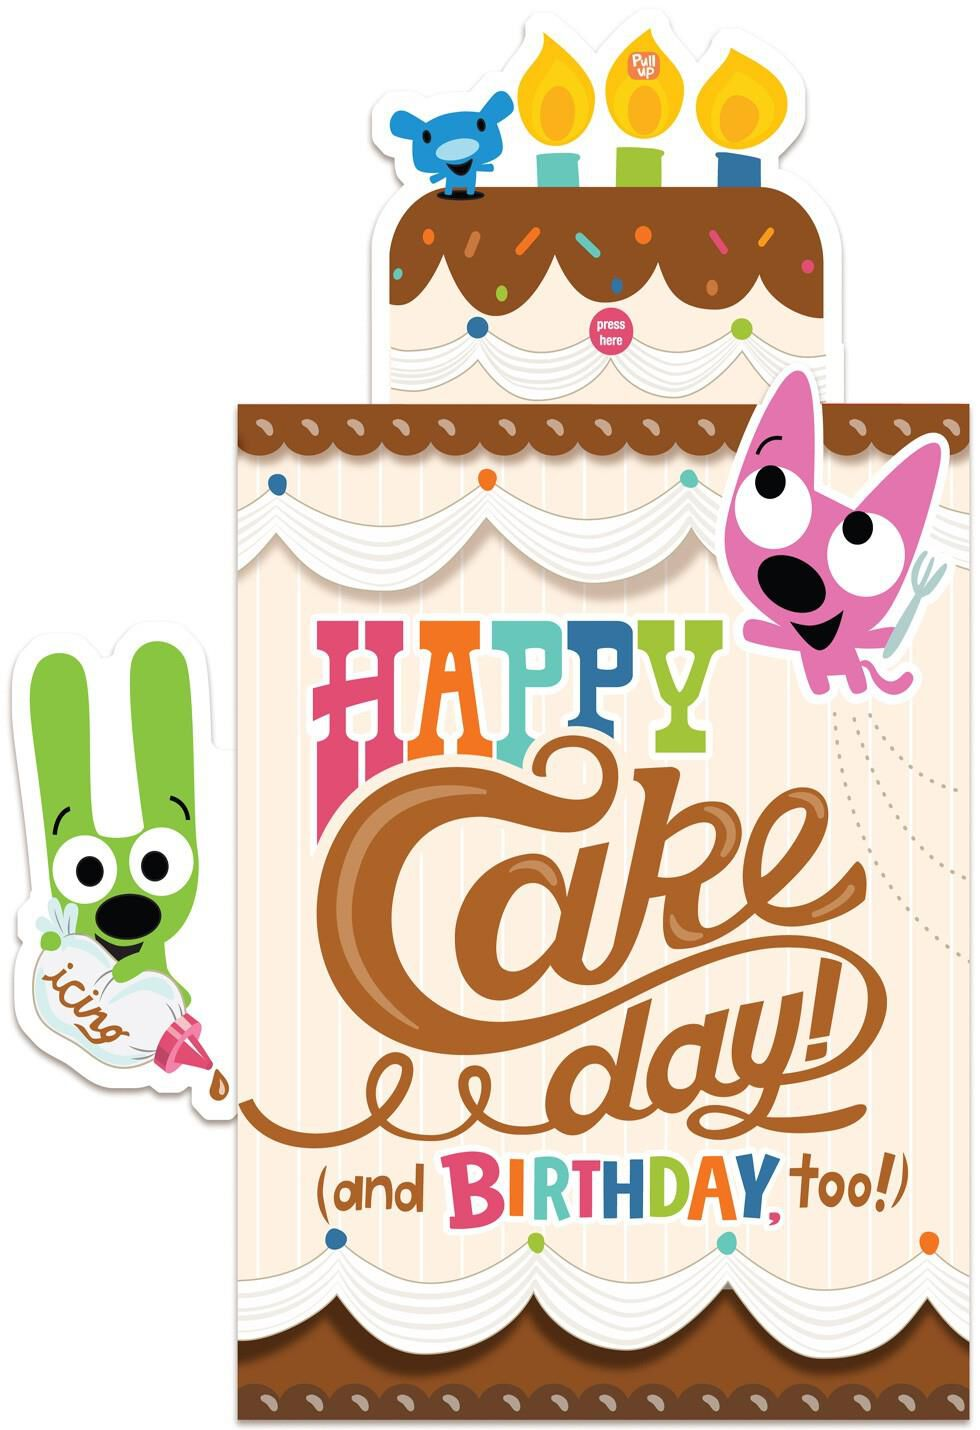 Pop up birthday cake sound card greeting cards hallmark bookmarktalkfo Images